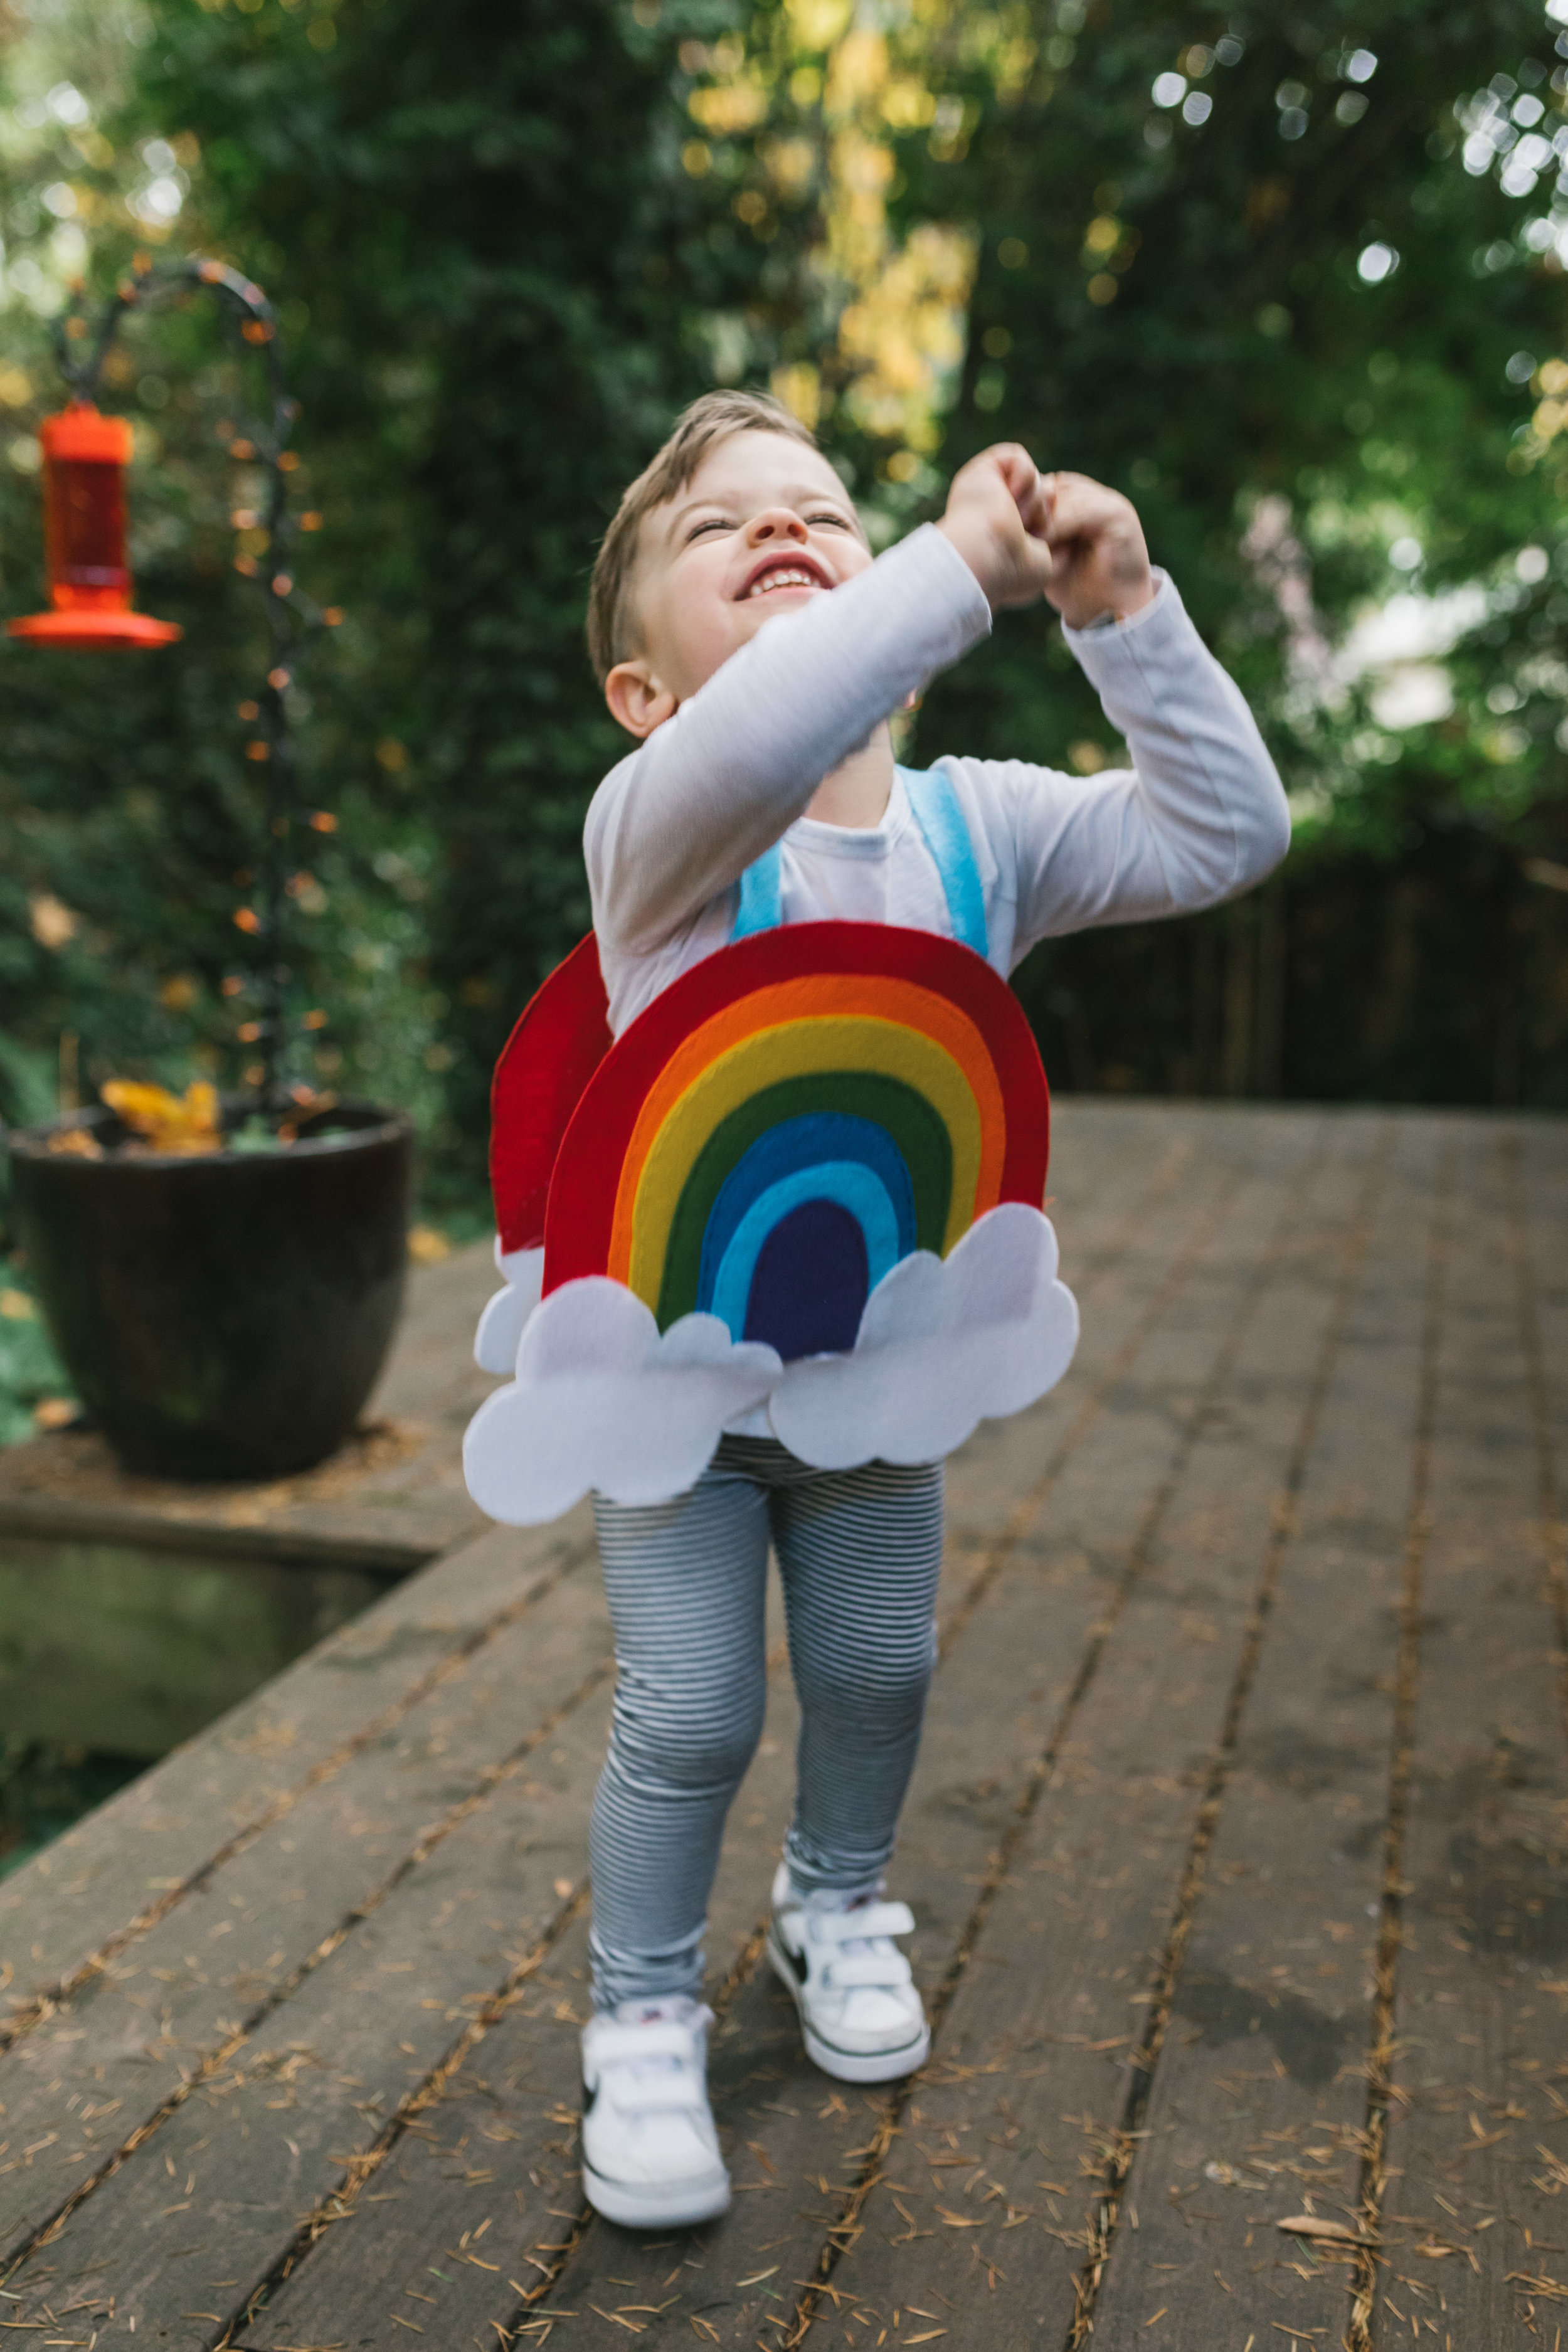 Rainbow, homemade costume, Halloween